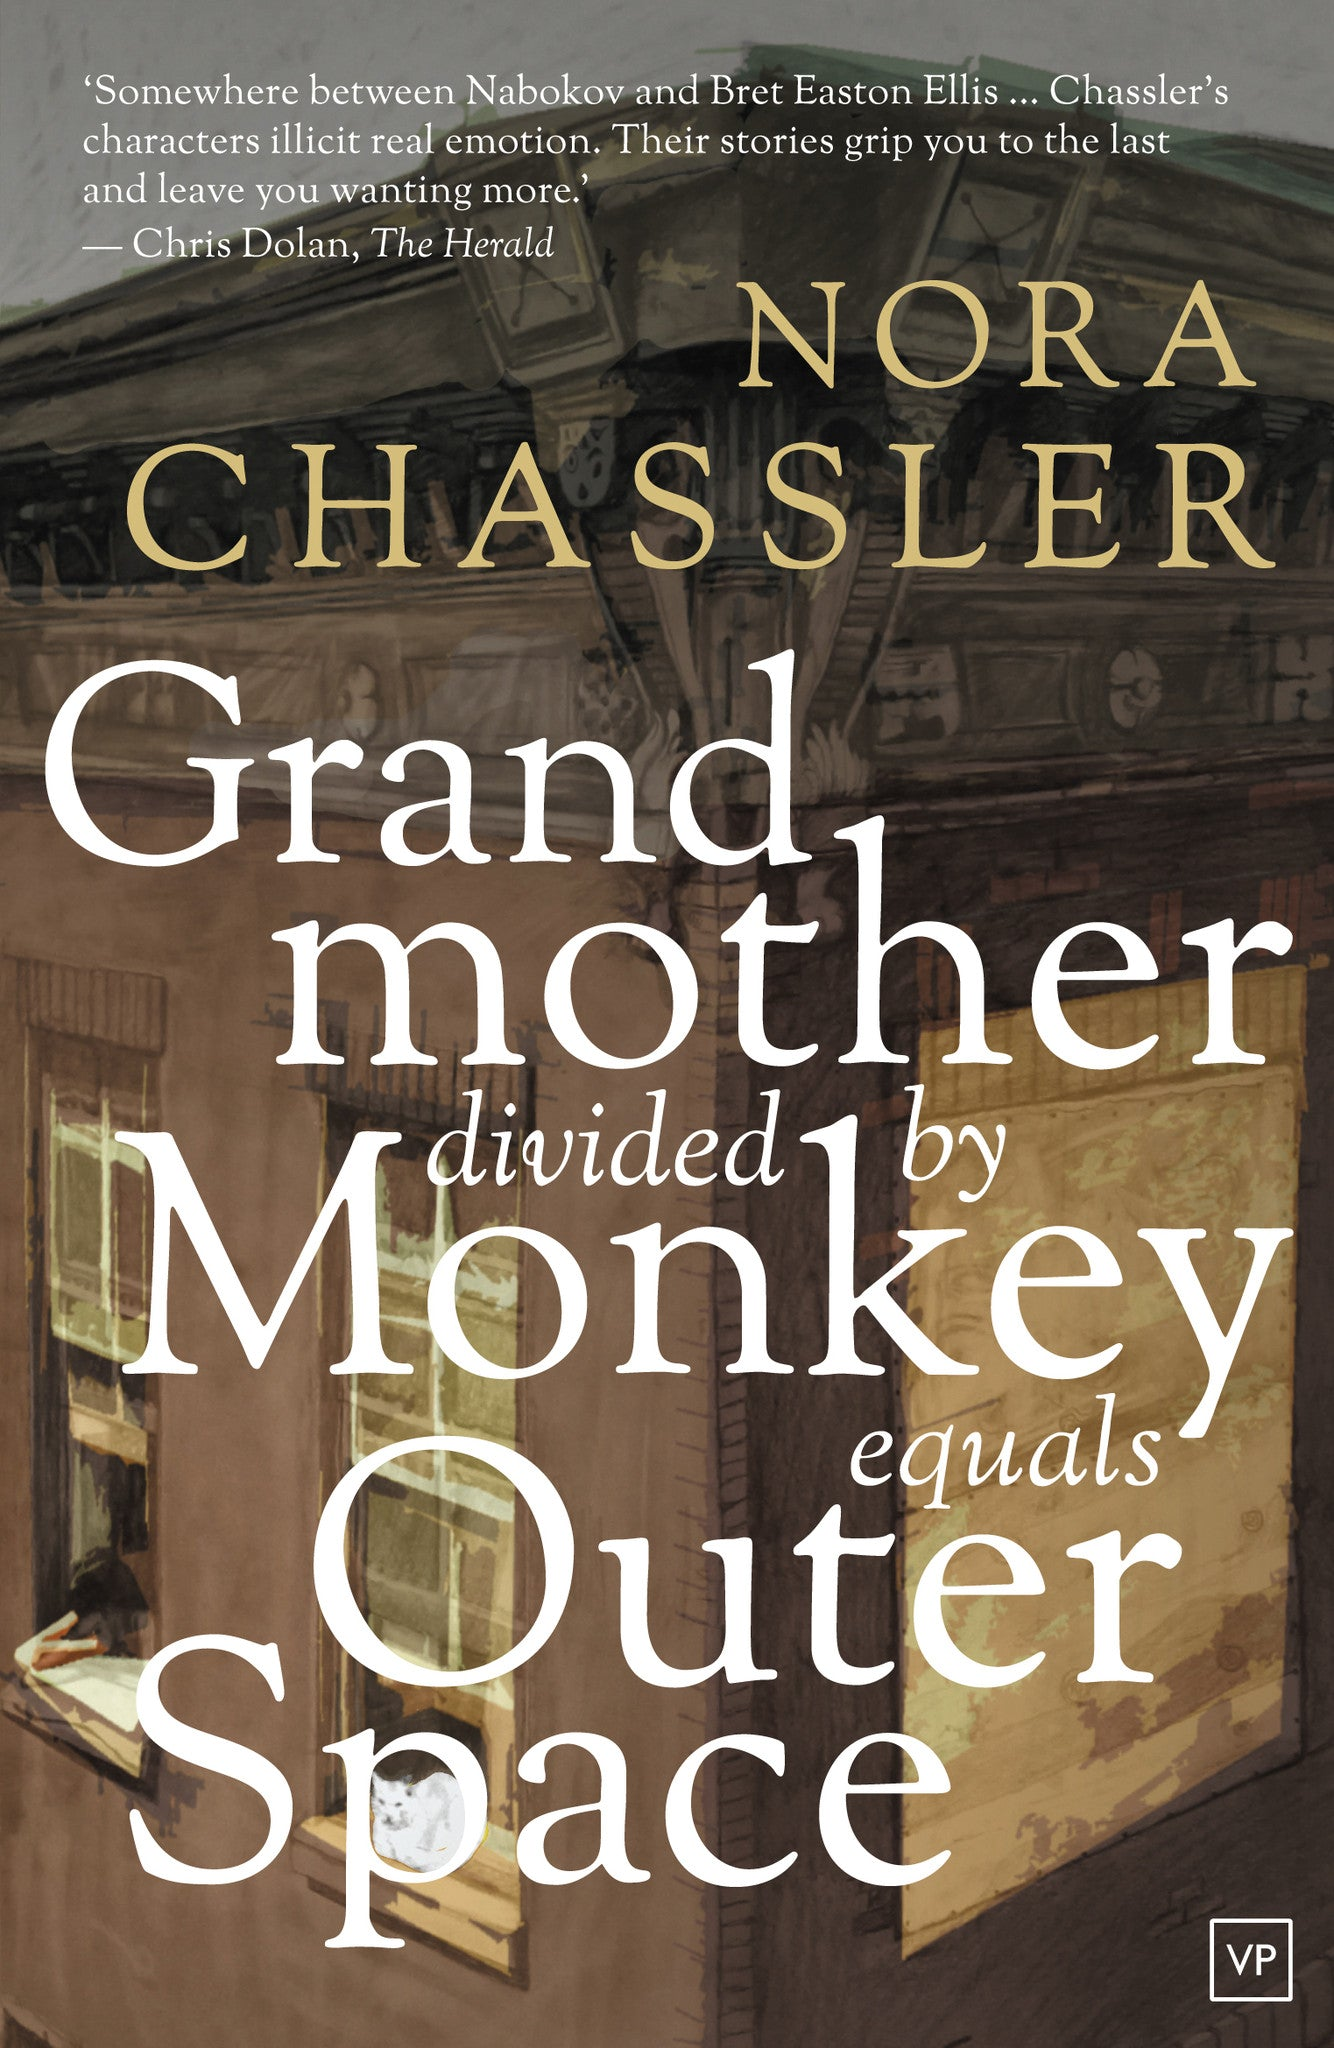 Grandmother Divided by Monkey Equals Outer Space